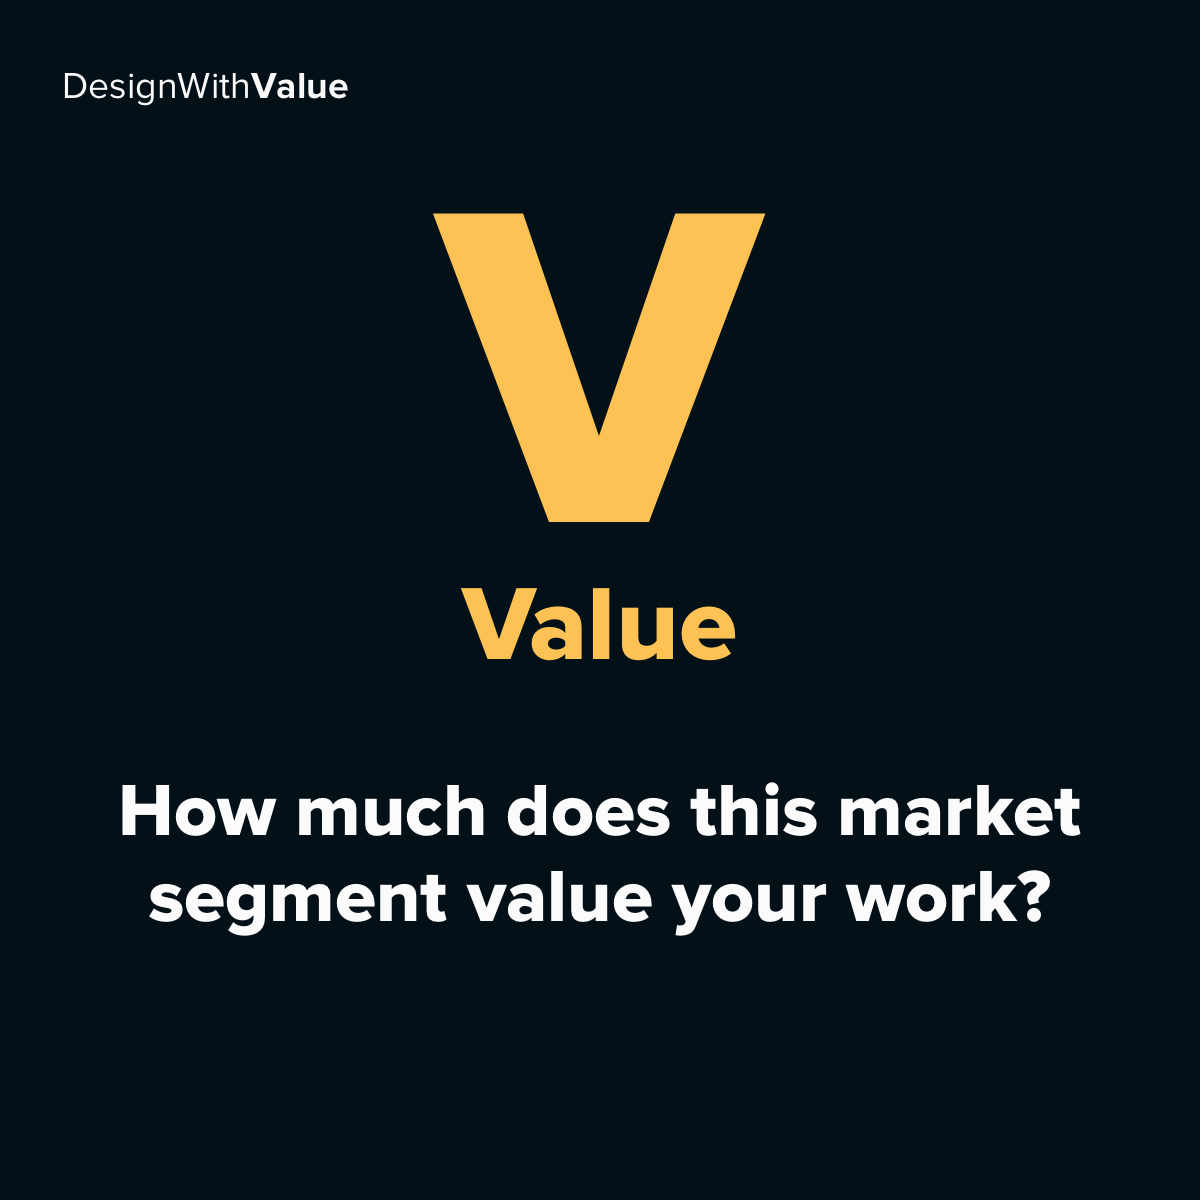 V = Value. How much does this market segment value your work?